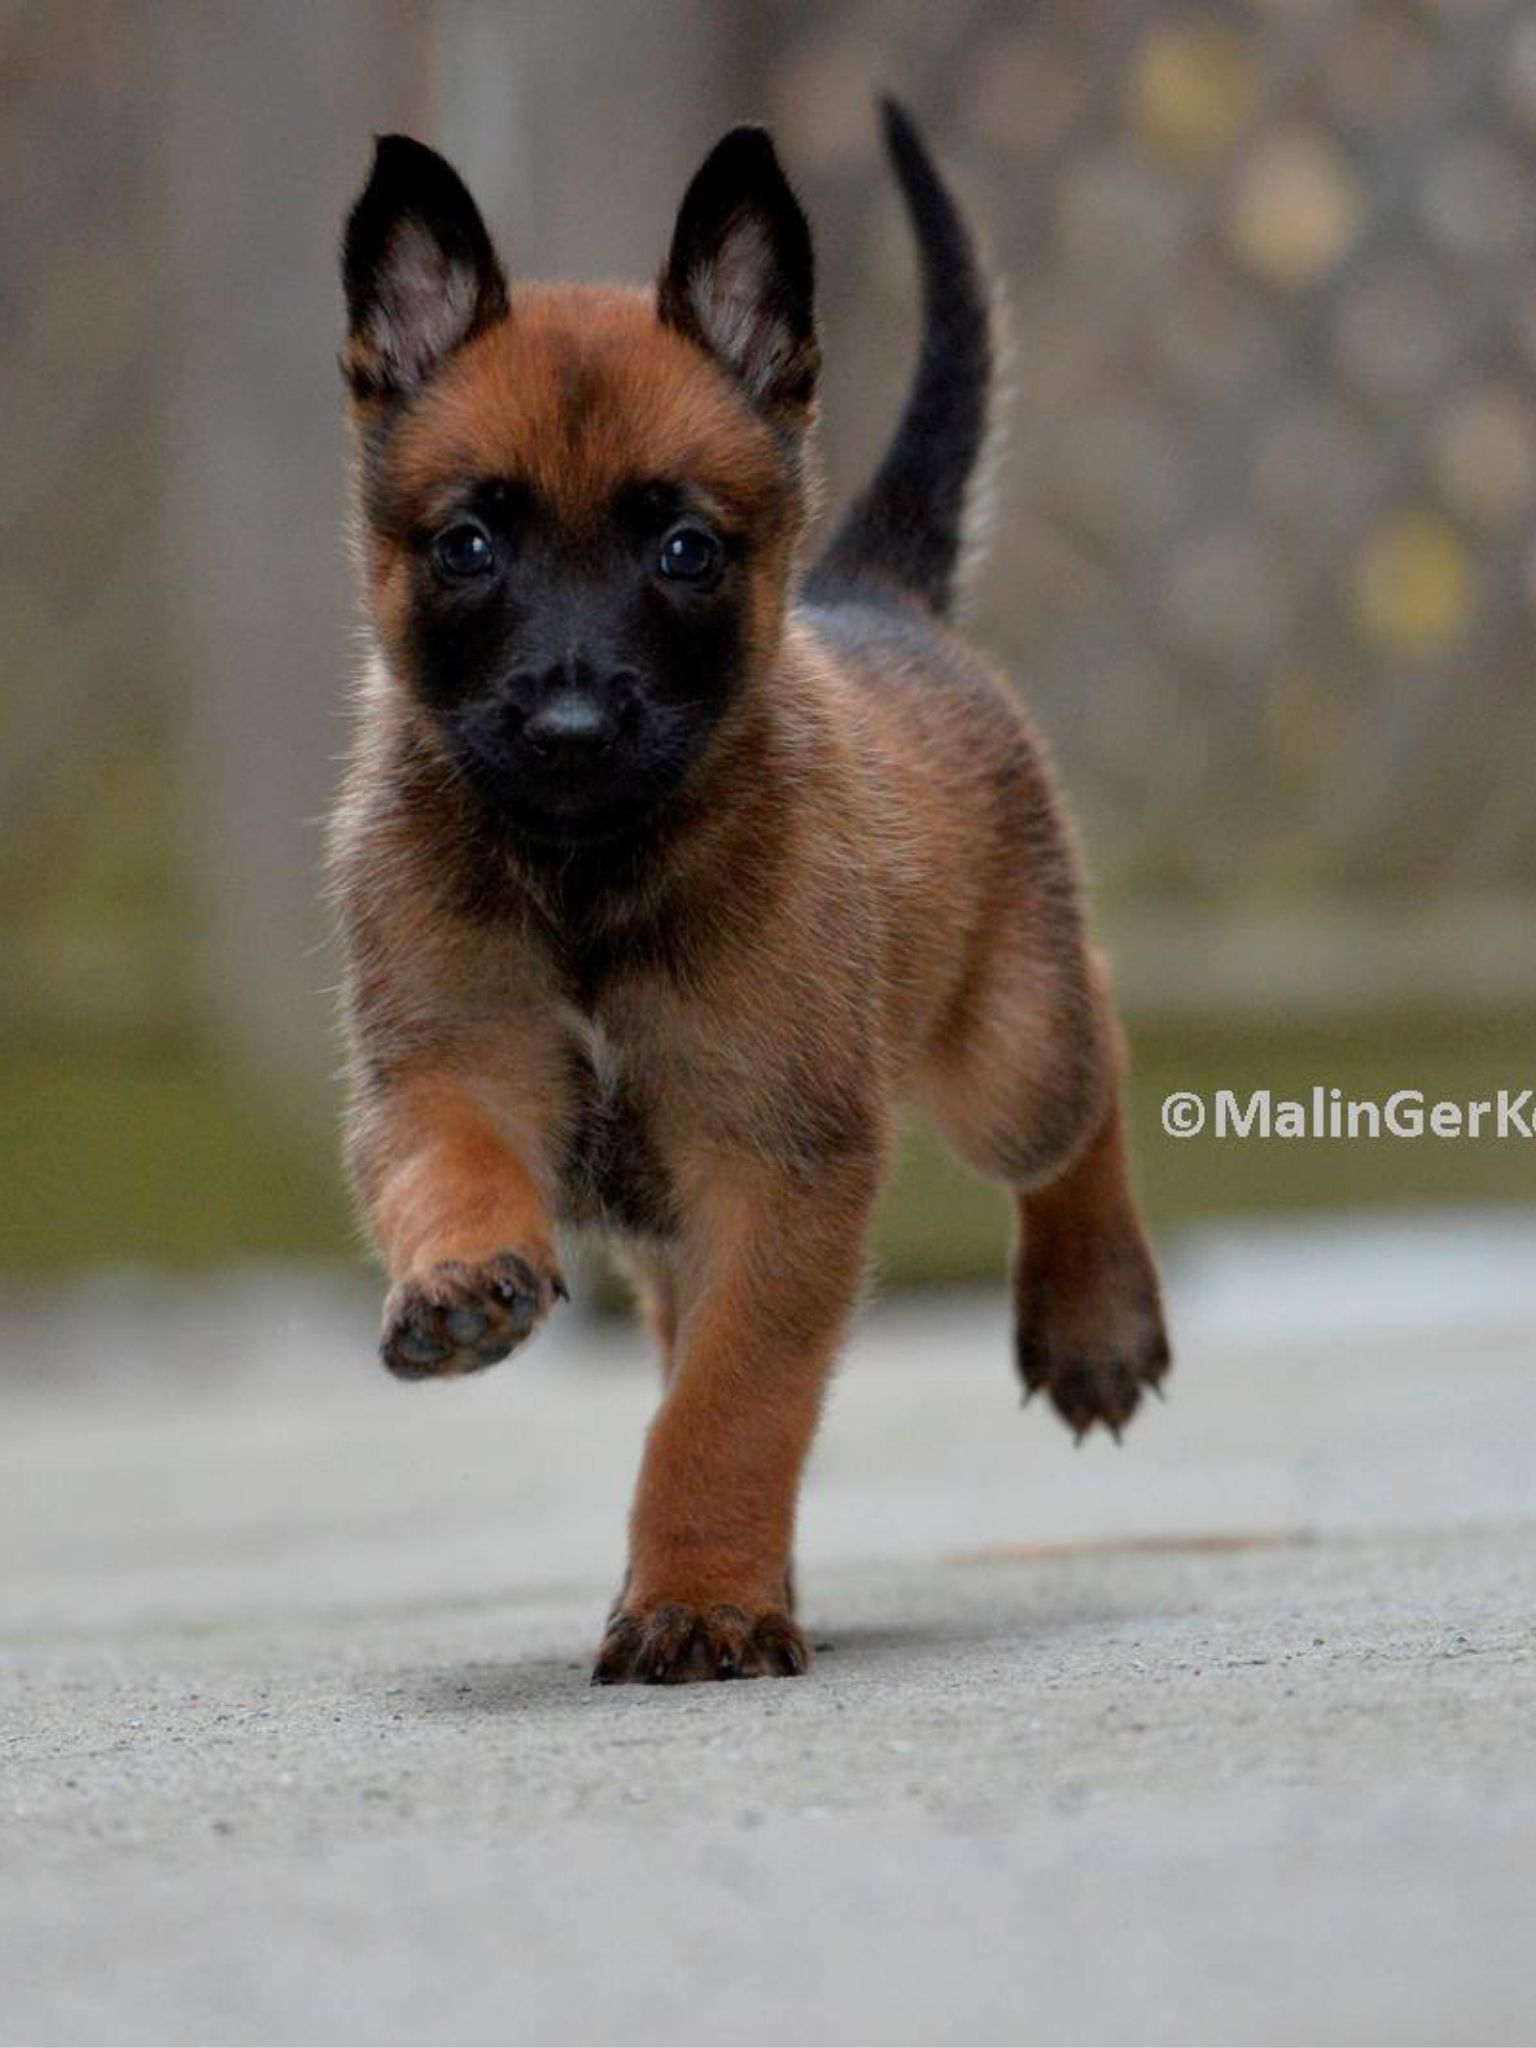 Belgian Malinois Malinois Dog Malinois Puppies Dogs